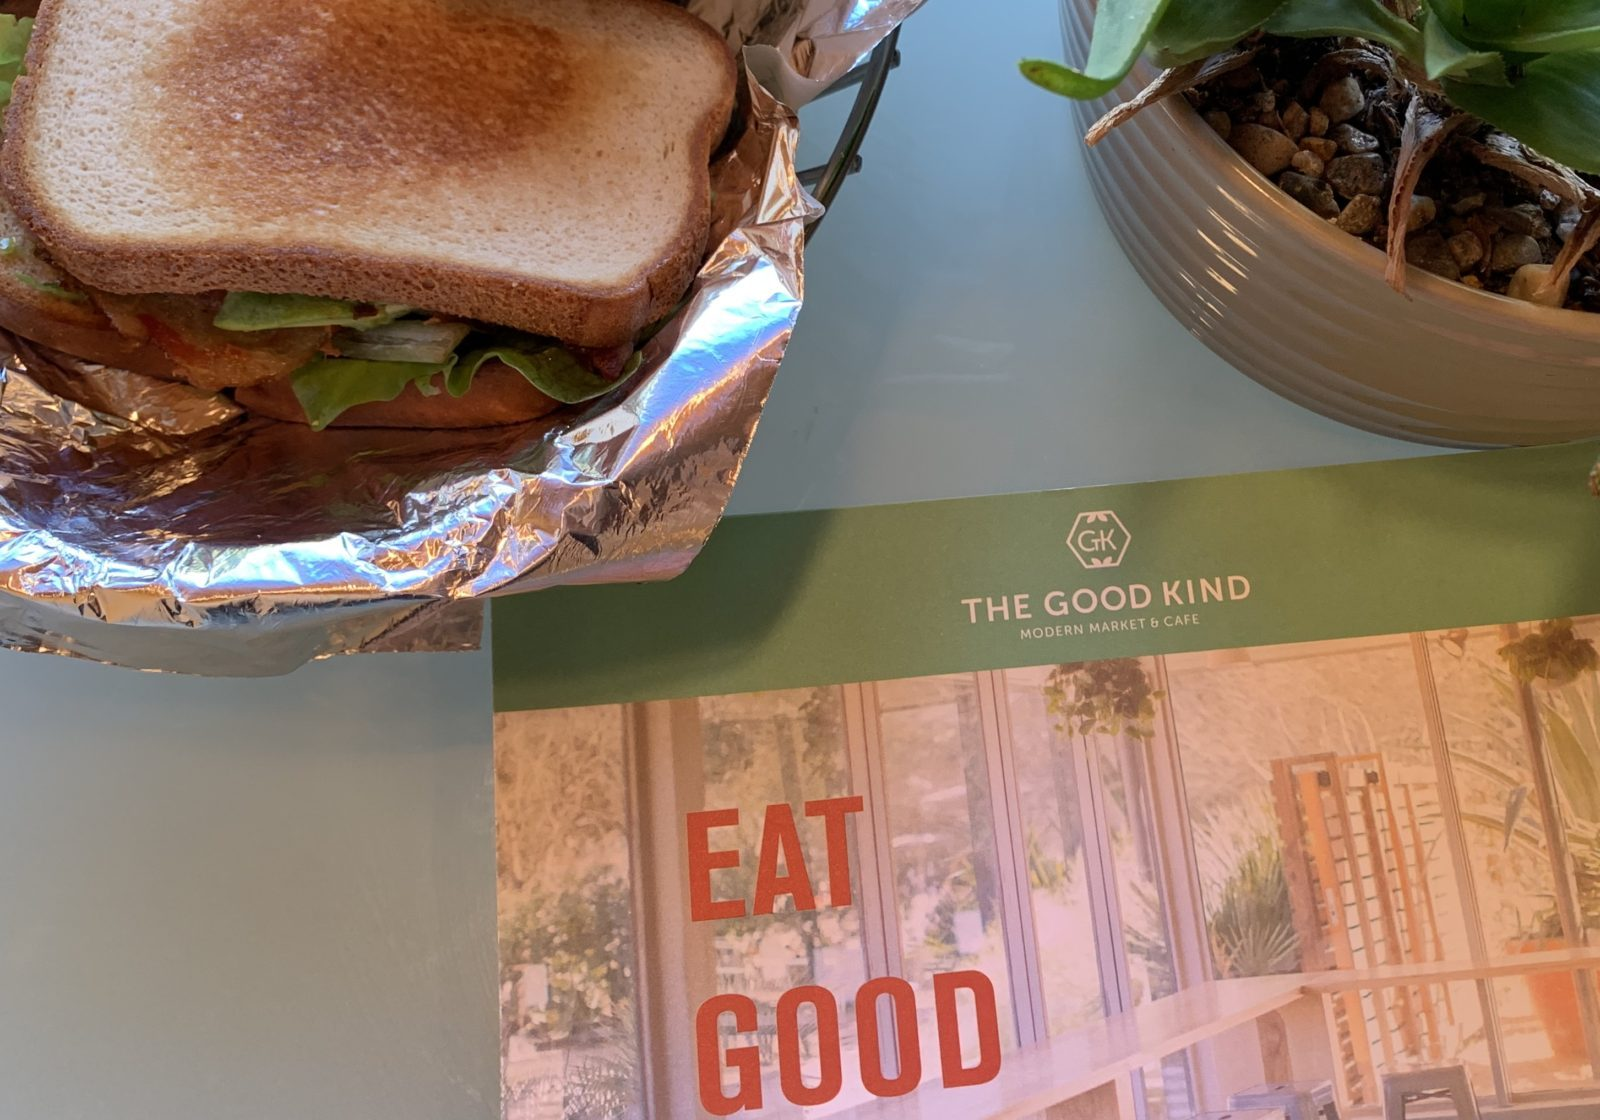 The Good Kind Southtown eat Good Kind Magazine